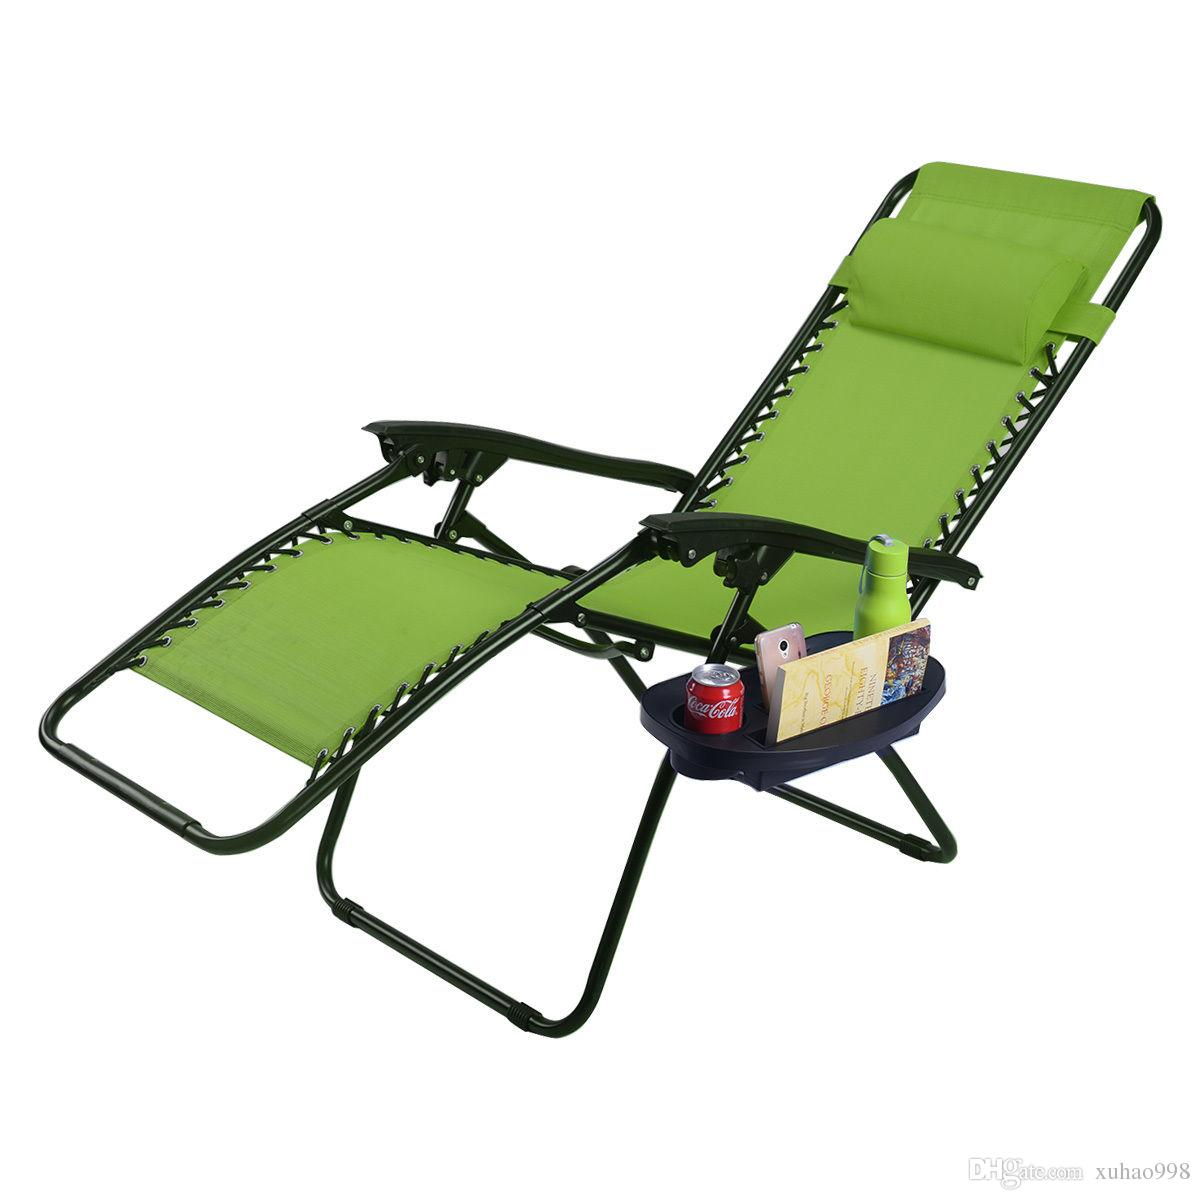 2017 Folding Zero Gravity Reclining Lounge Chairs Outdoor Beach Patio W/Utility Tray From Xuhao998 $33.17 | Dhgate.Com  sc 1 st  DHgate.com : recliner lounge chair - islam-shia.org